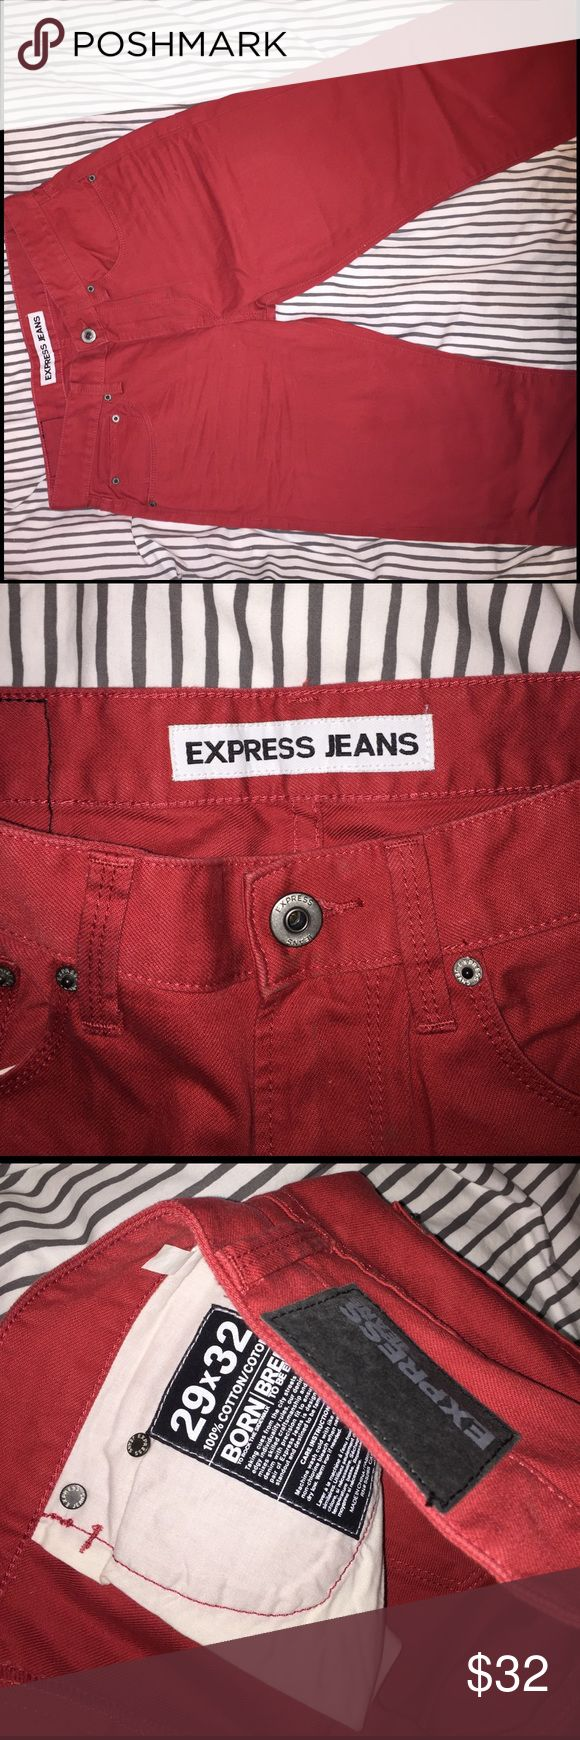 Express Man Jeans Great pair of red pants! Wanted these so bad and then never wore them! Express Pants Chinos & Khakis